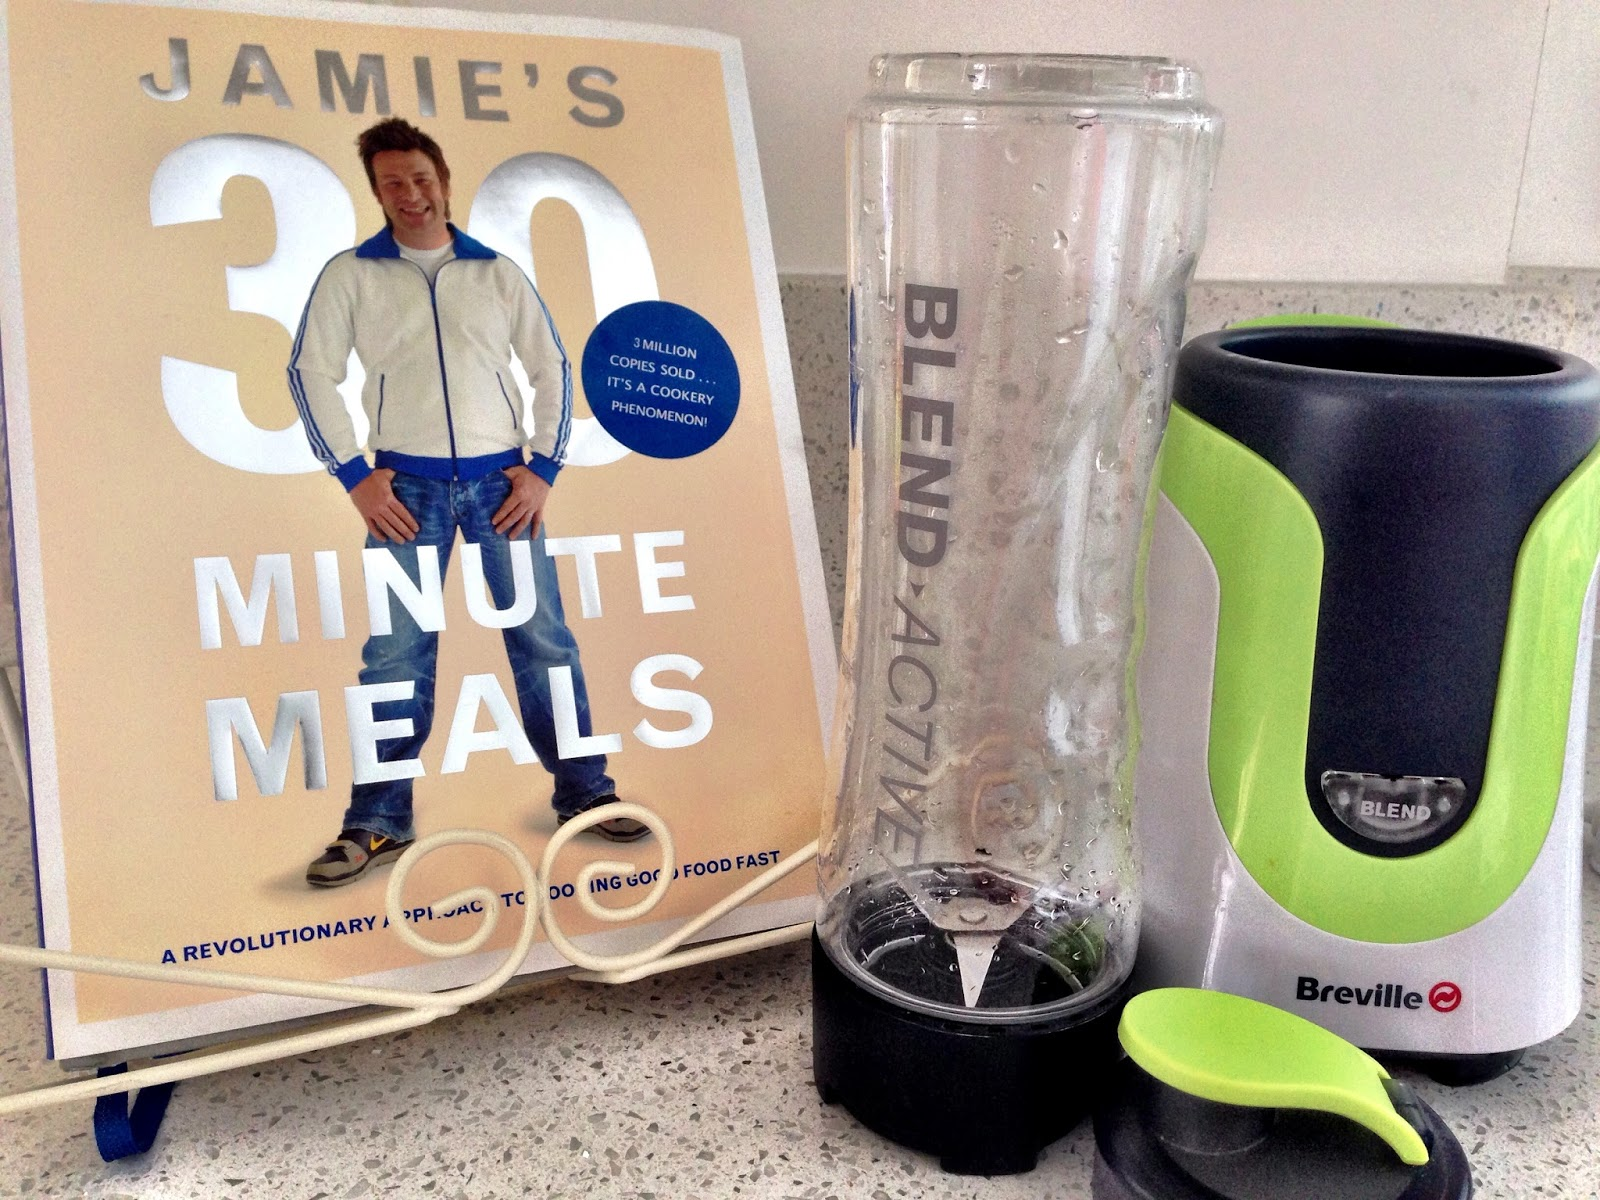 Jamie's 30 Minute Meals, Breville Blend Active